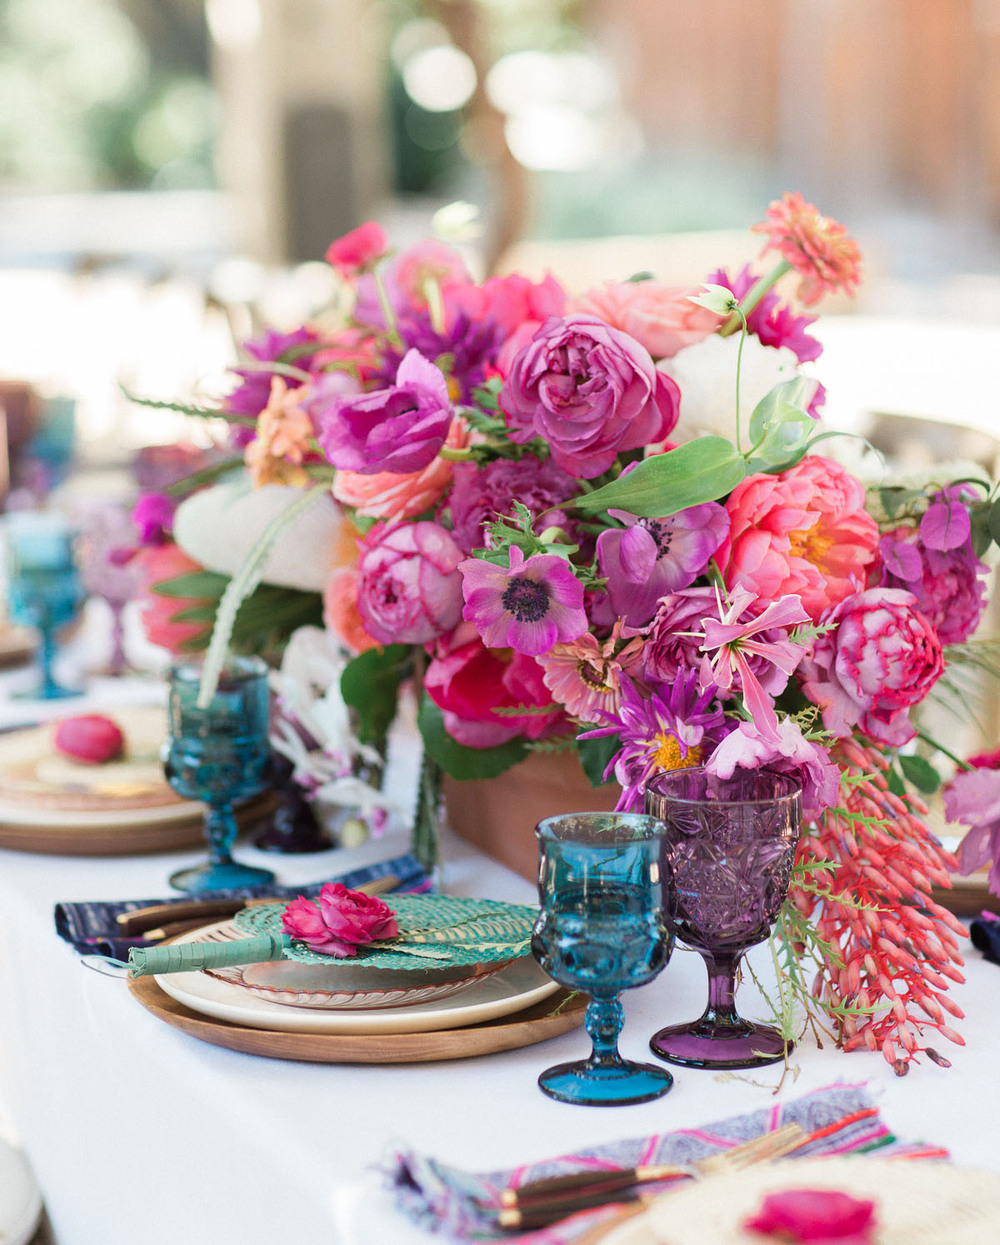 Summertime Party Ideas & Outdoor Entertaining | asavvylifestyle.com {image via Green Wedding Shoes}